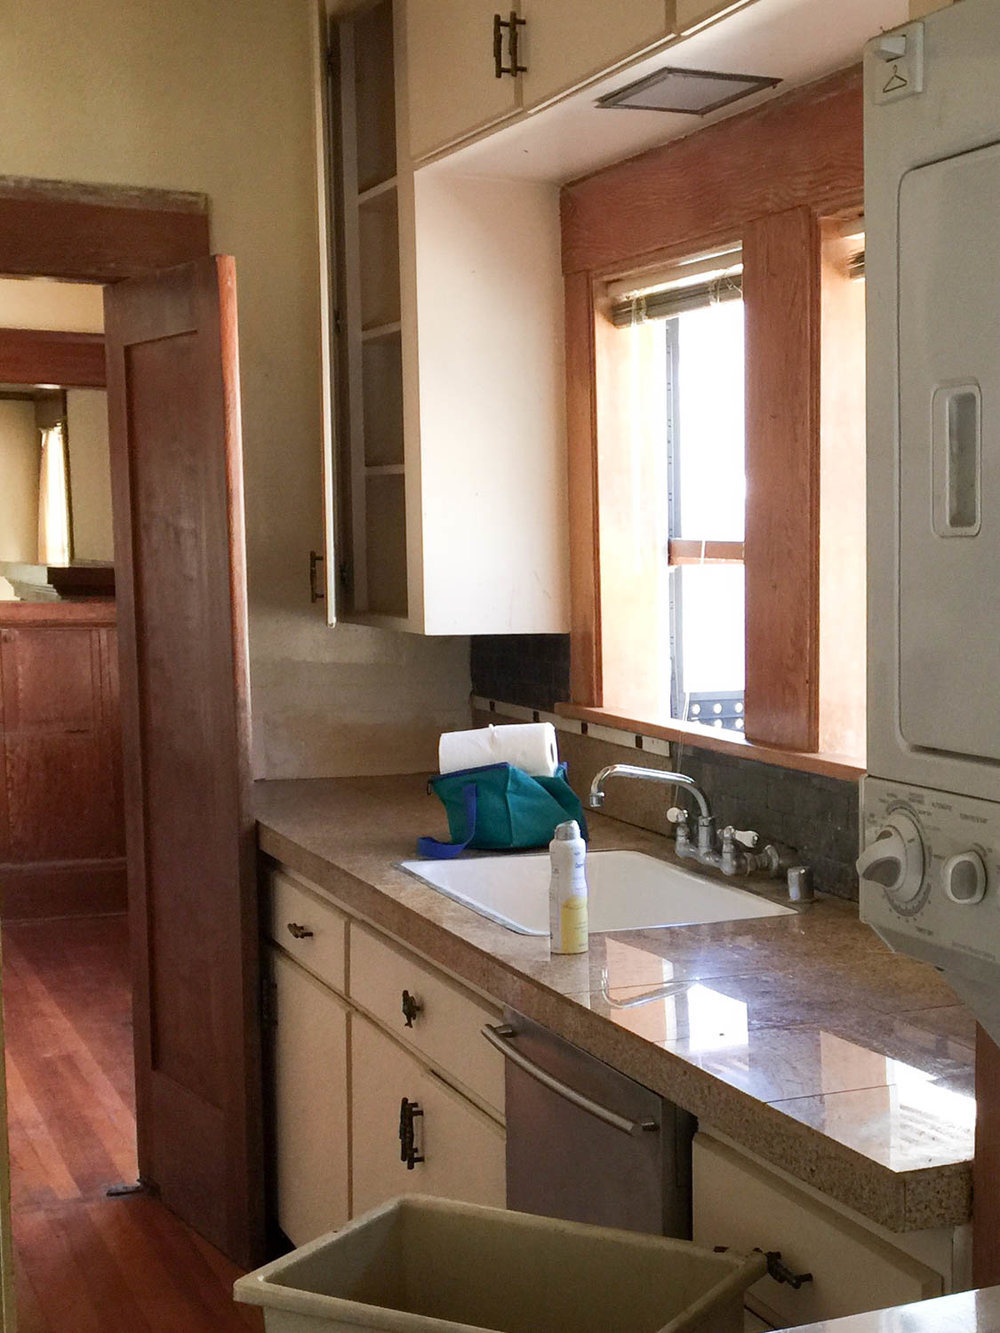 The Gold Hive How To Concrete Countertops